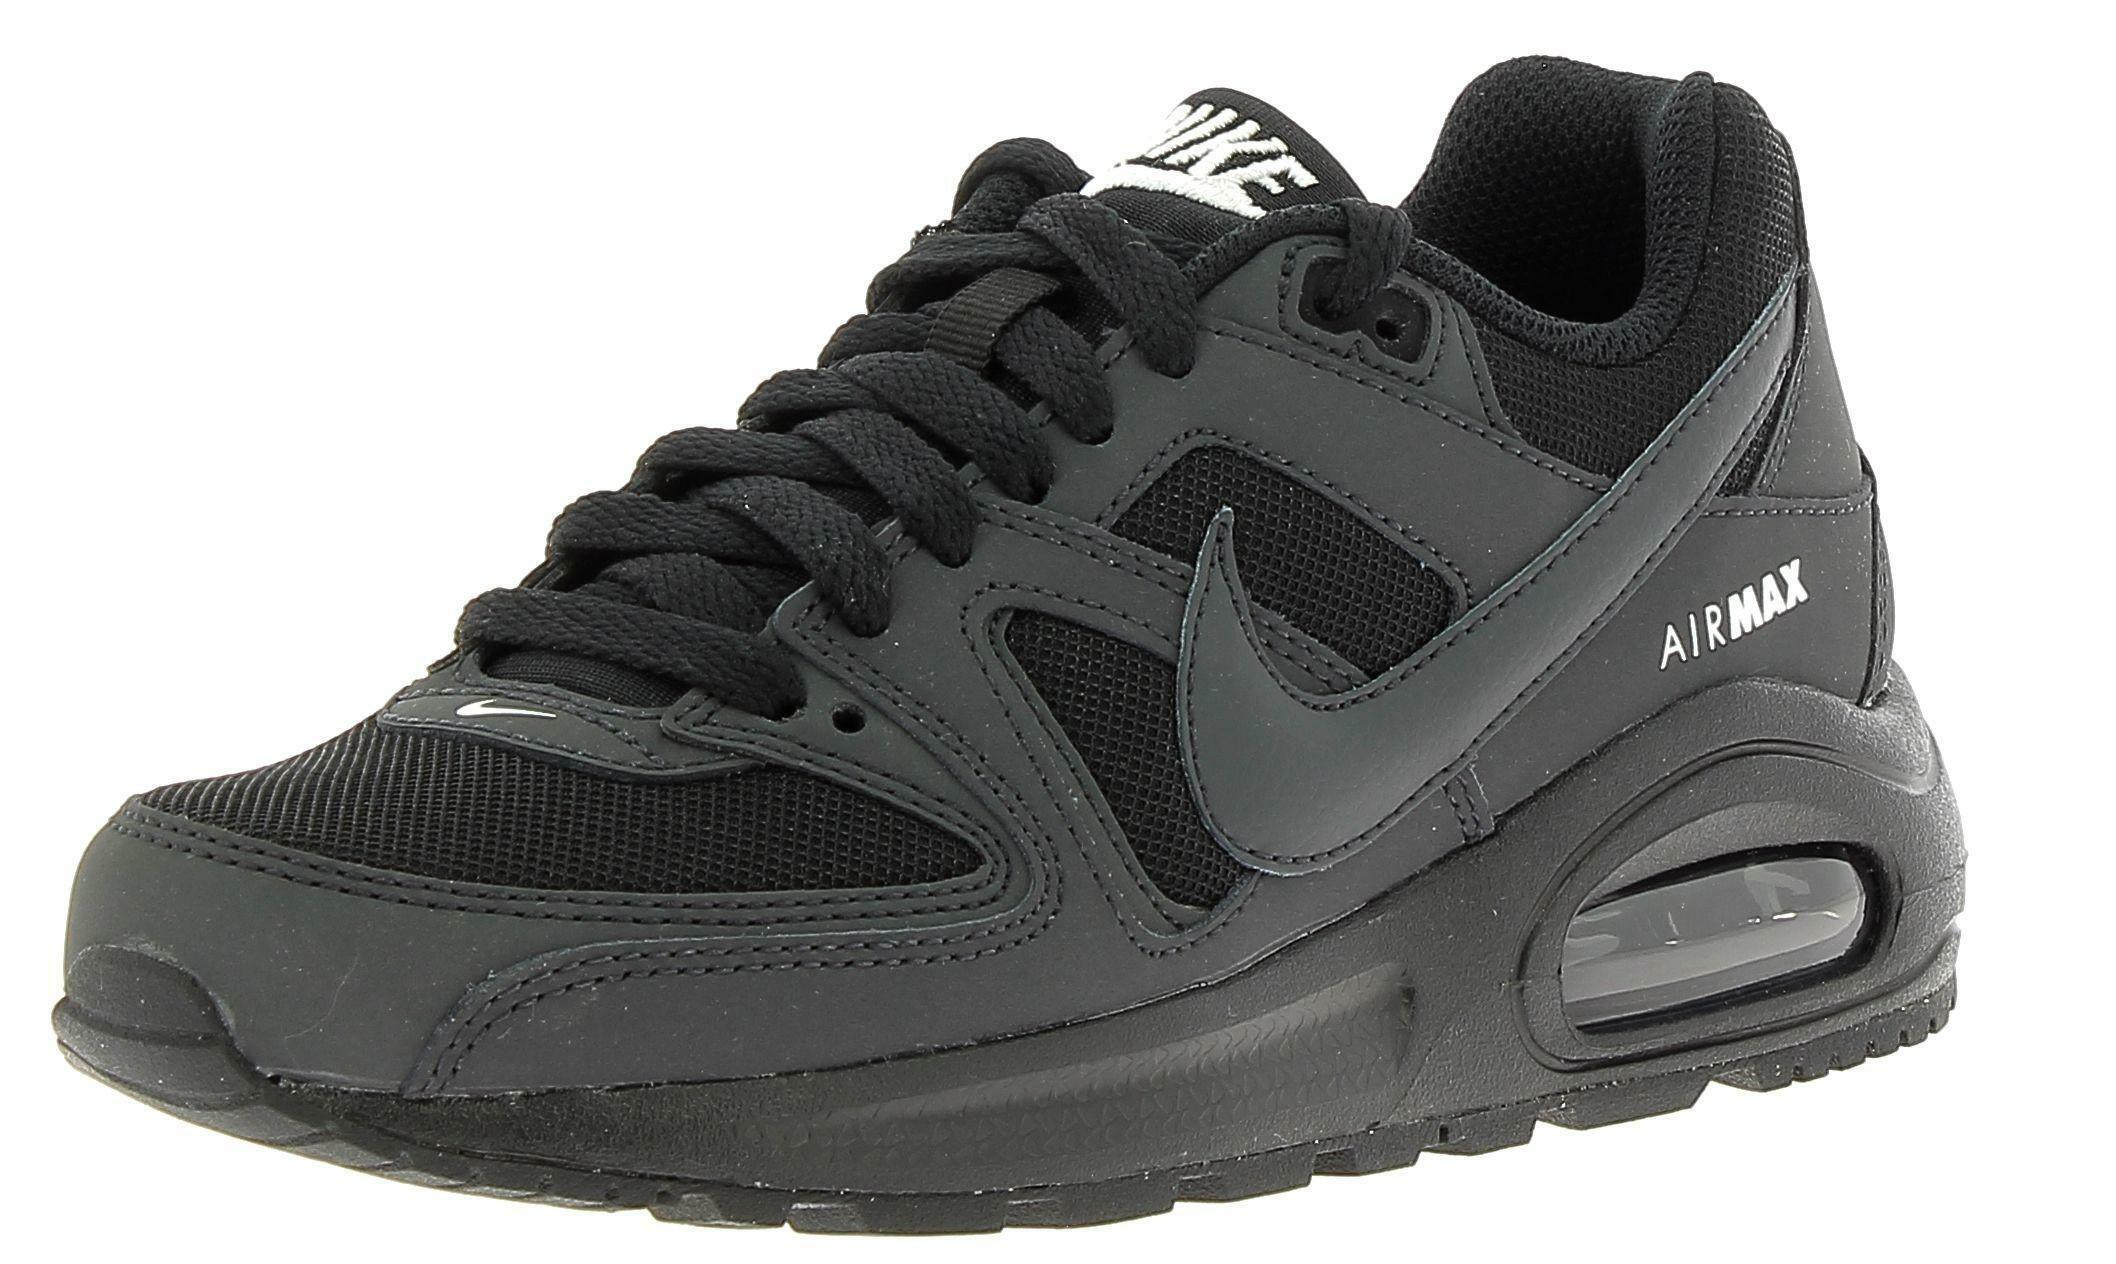 Nike air max command flex (ps) scarpe sportive bamino nere